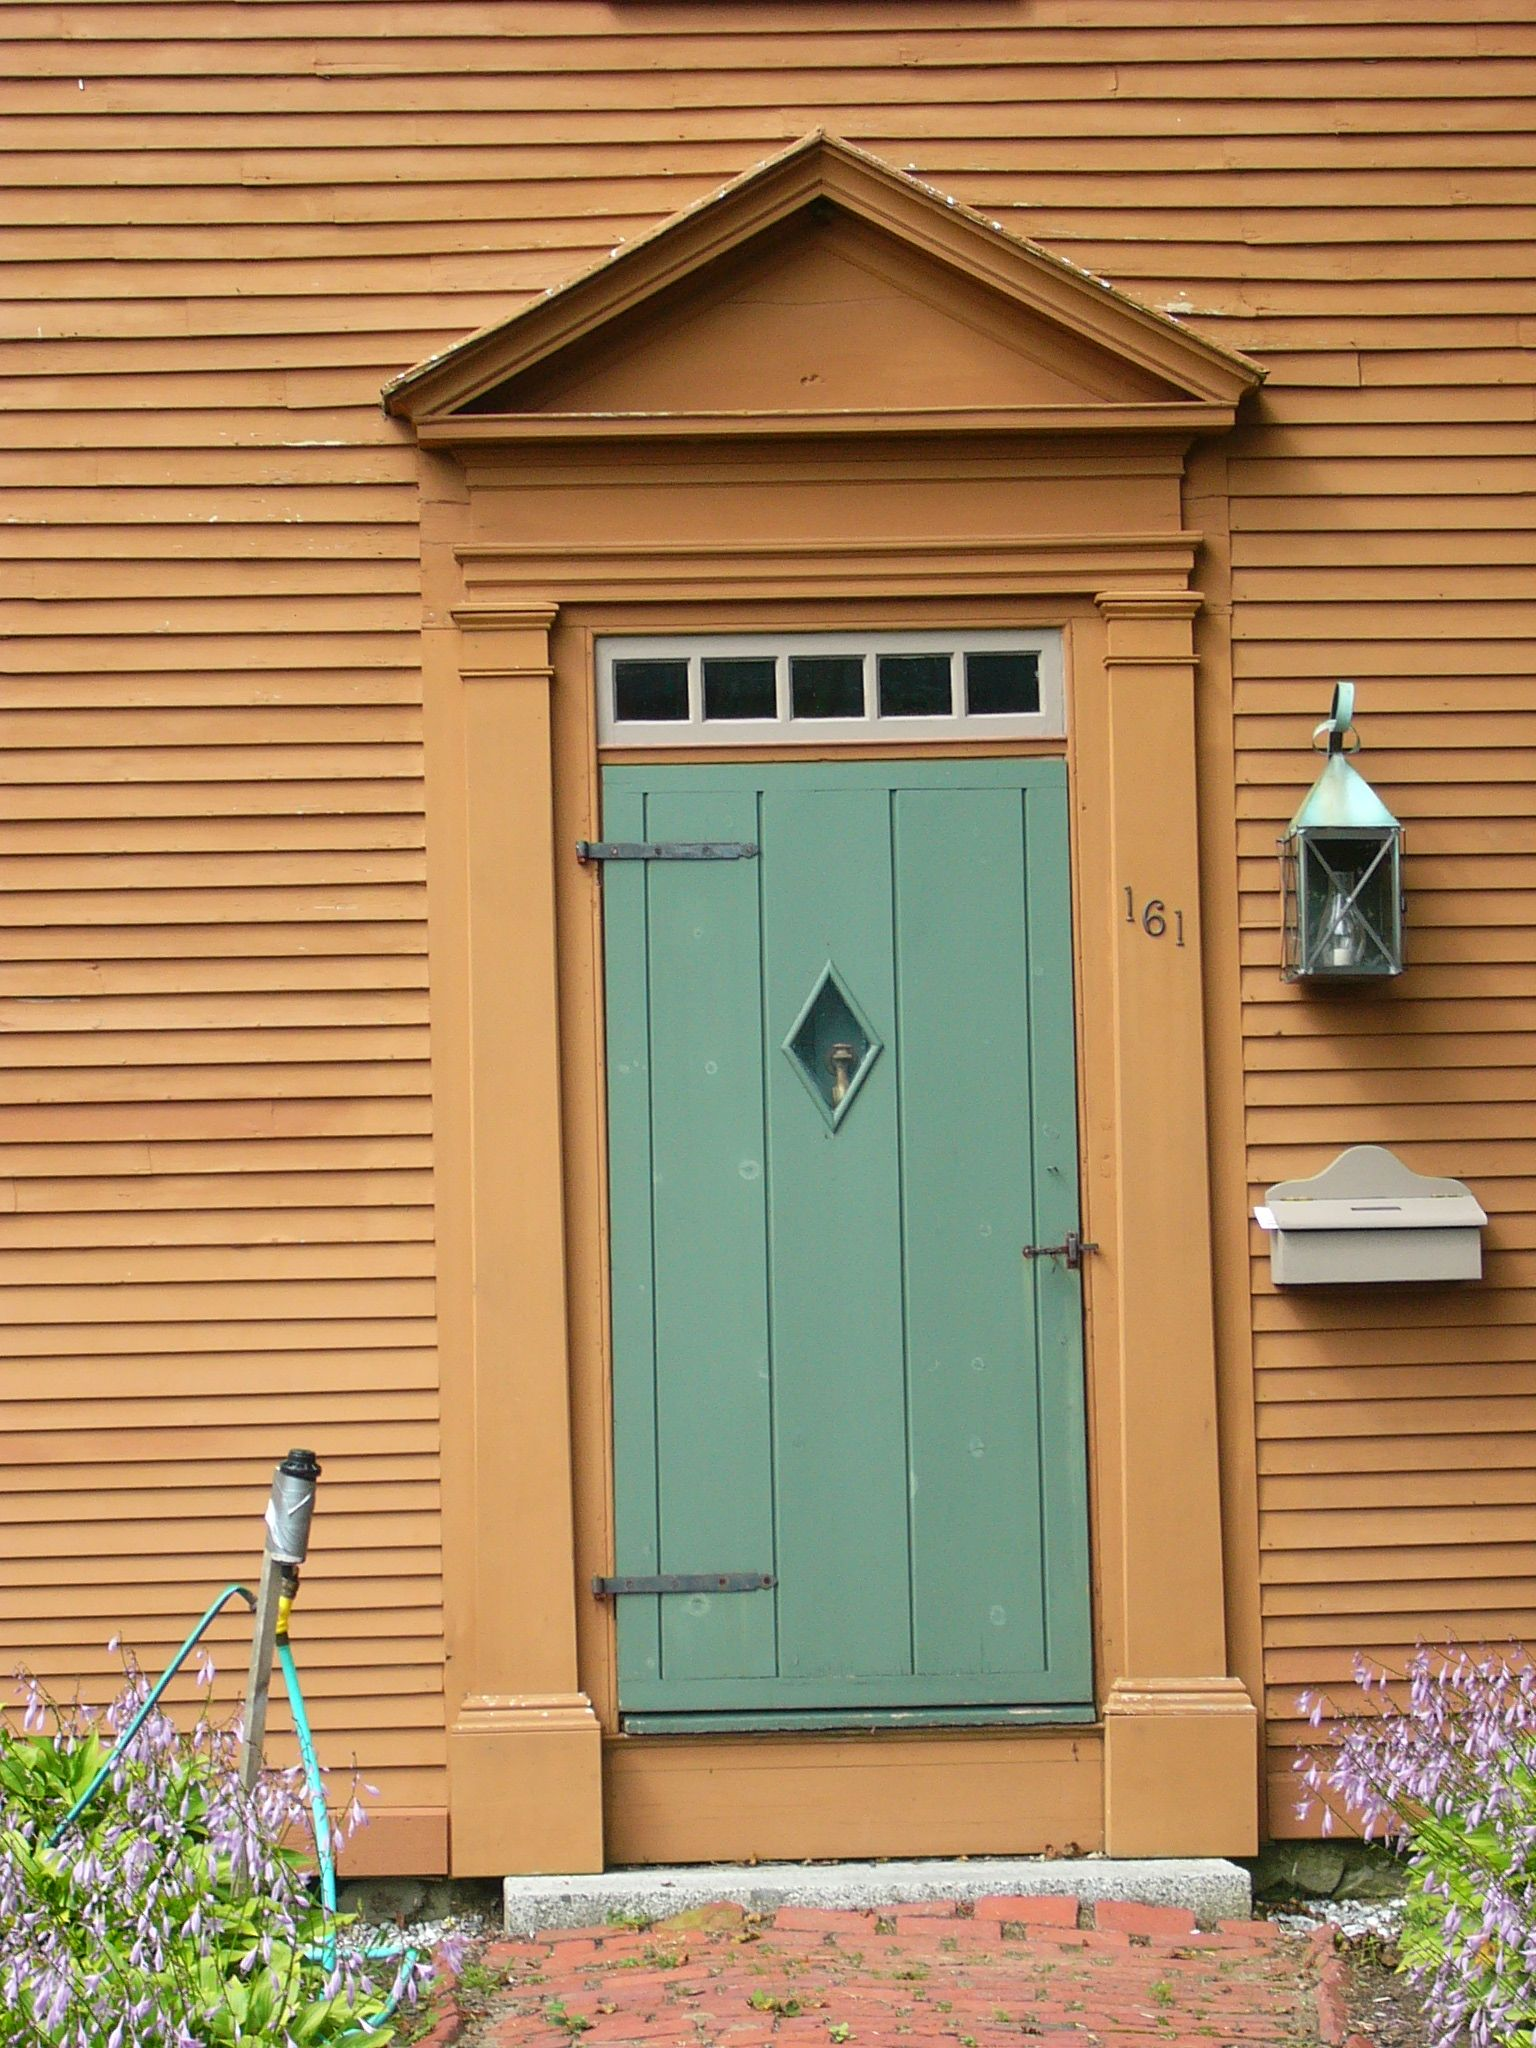 Portsmouth Doors Slab Doors Puertas Gate & Pin by Michael Kelso dba Maine Carpenter on Doors of Portsmouth NH ...